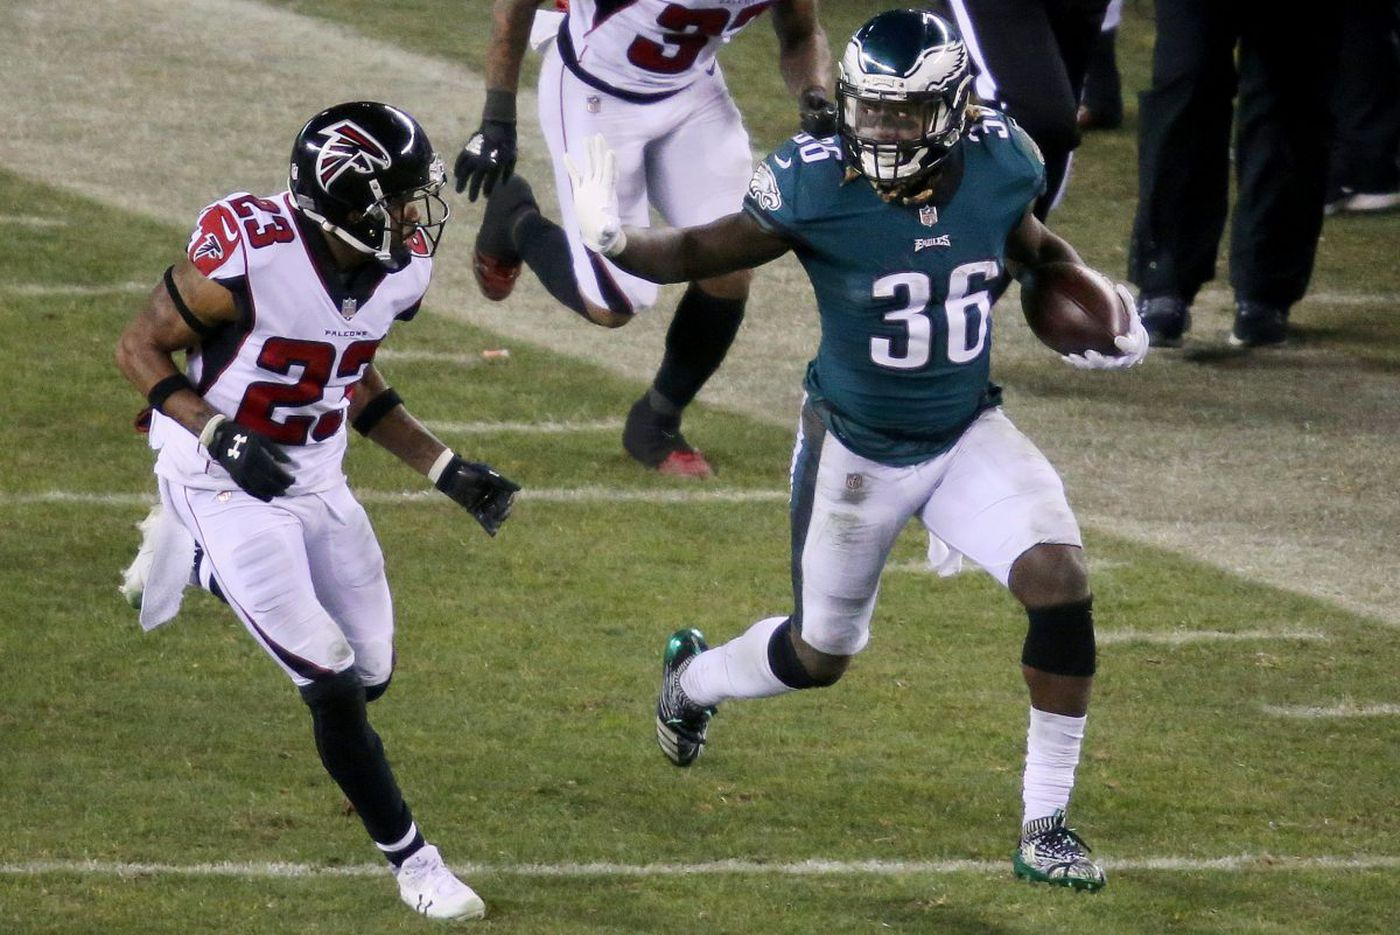 Eagles-Vikings: Critical question is who has the edge on third down   David Murphy